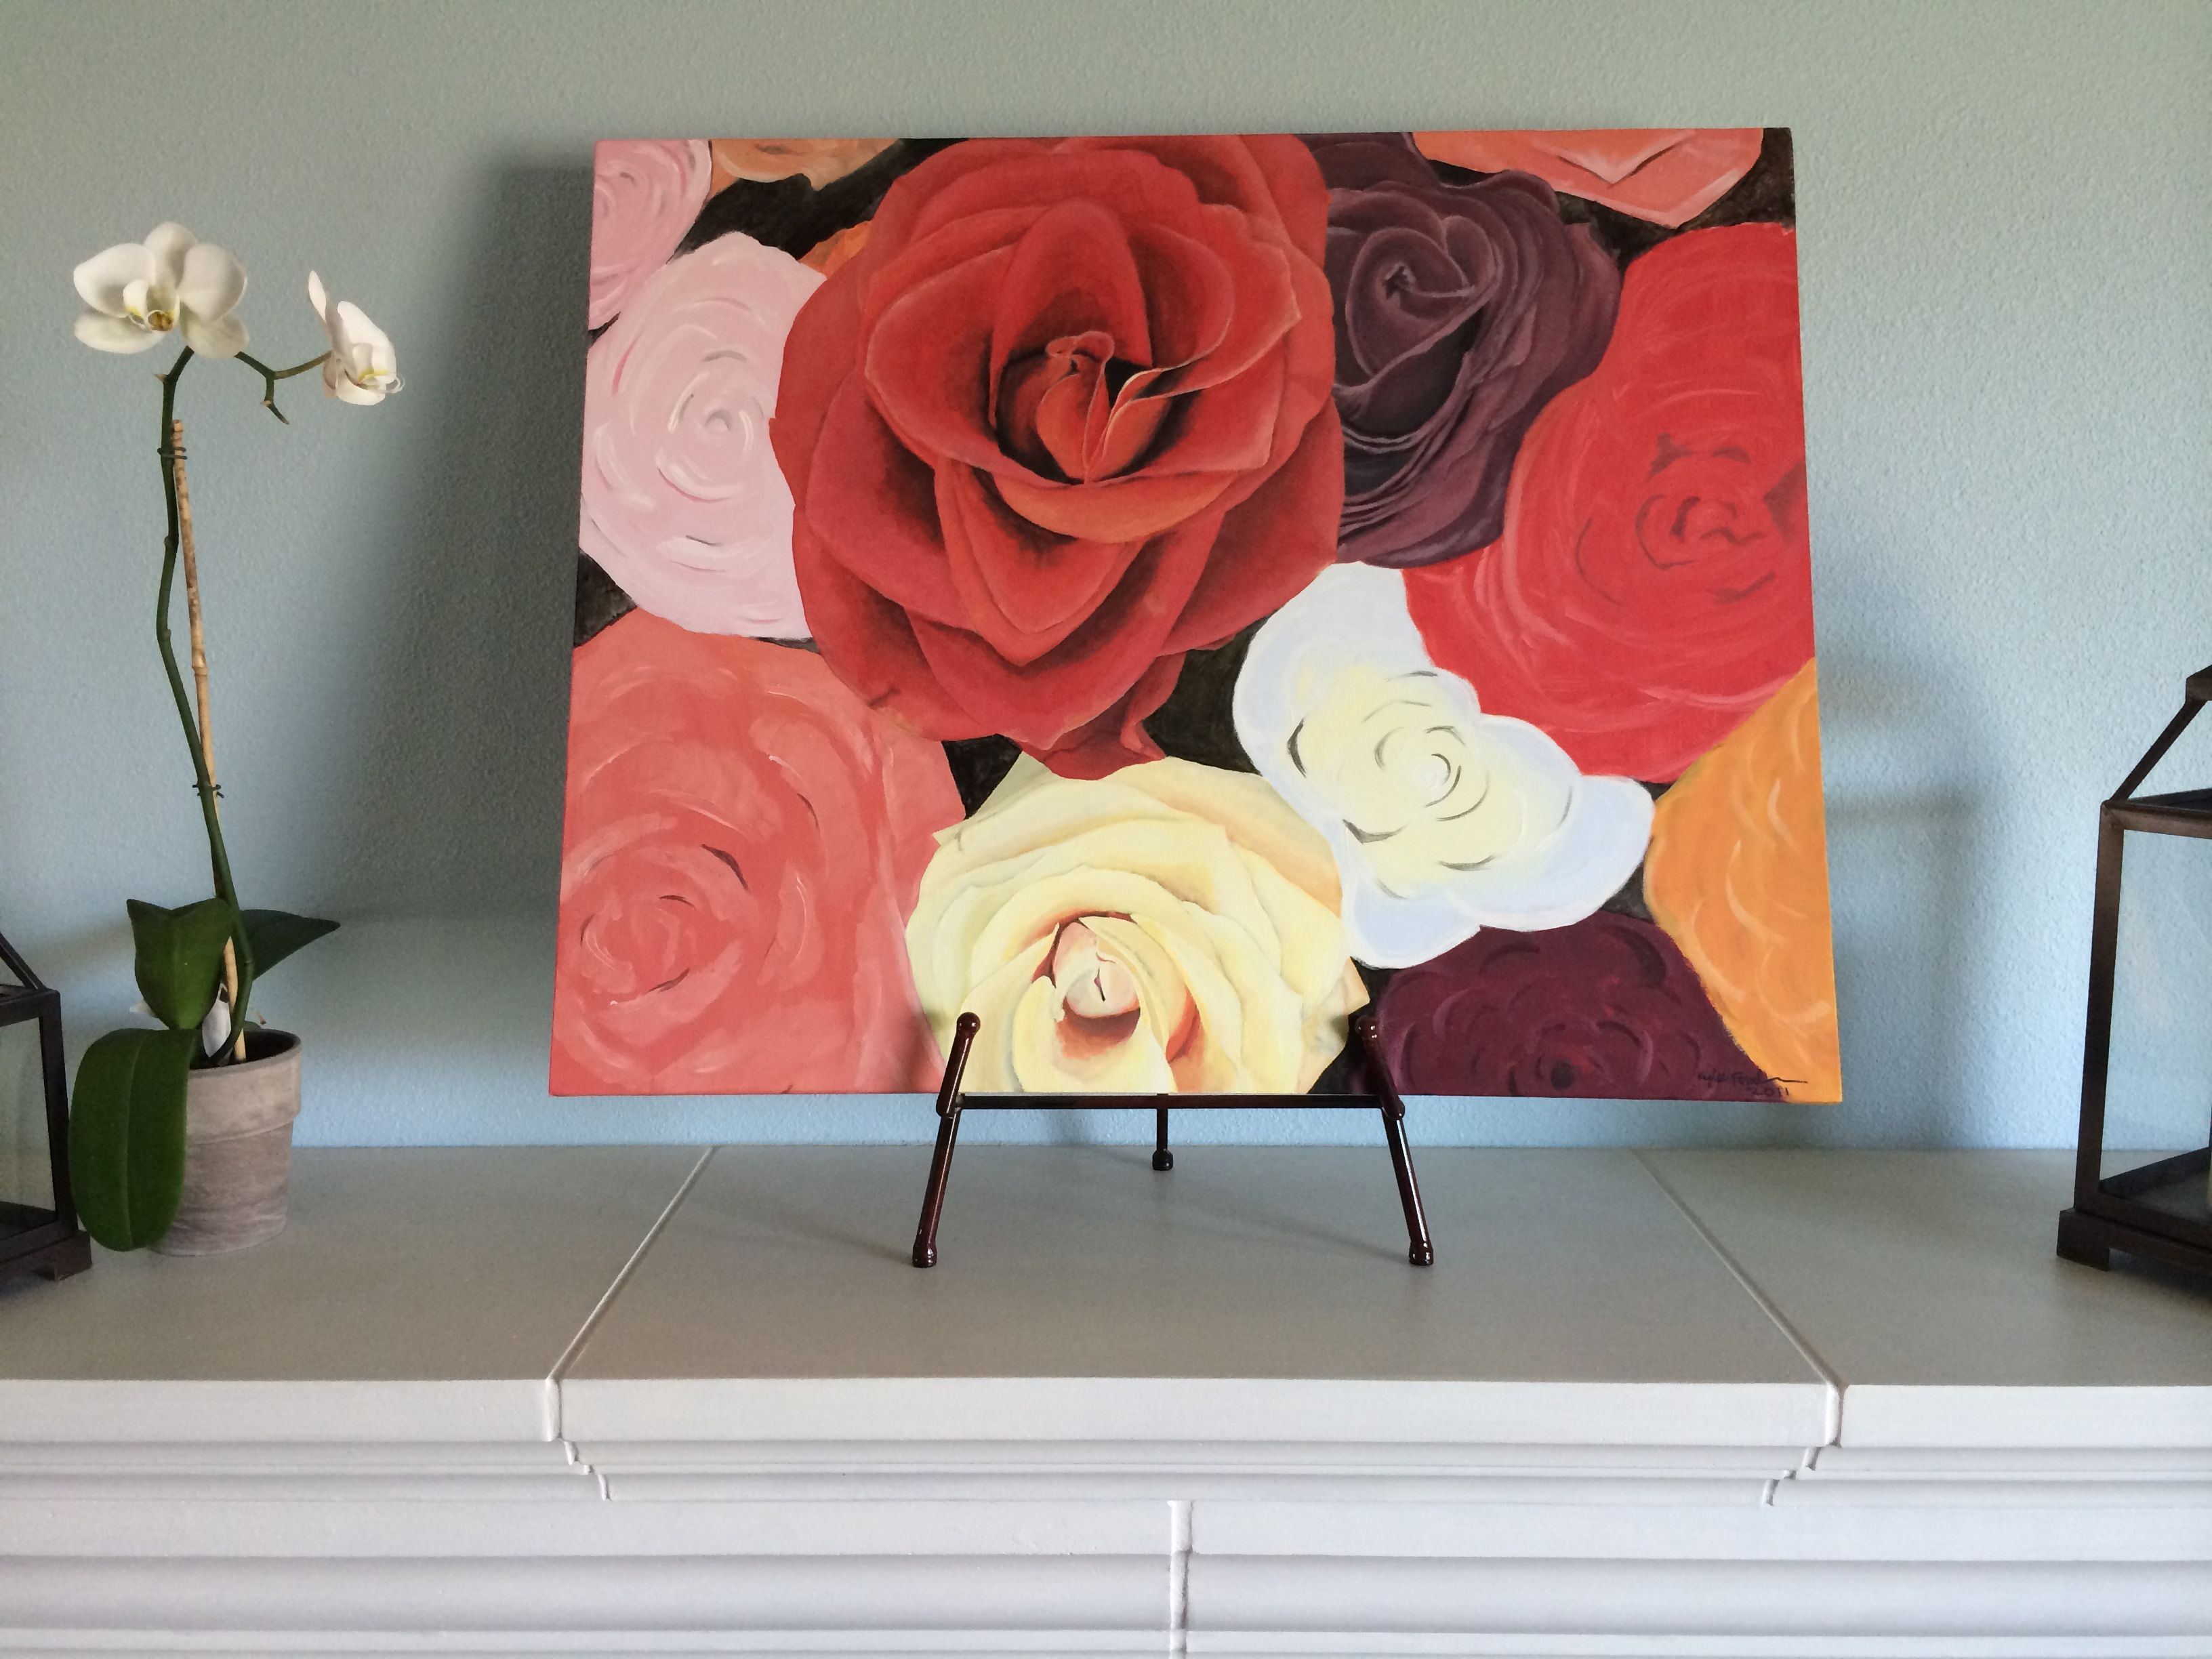 Flowers For Mom painting by Kylee Nicole